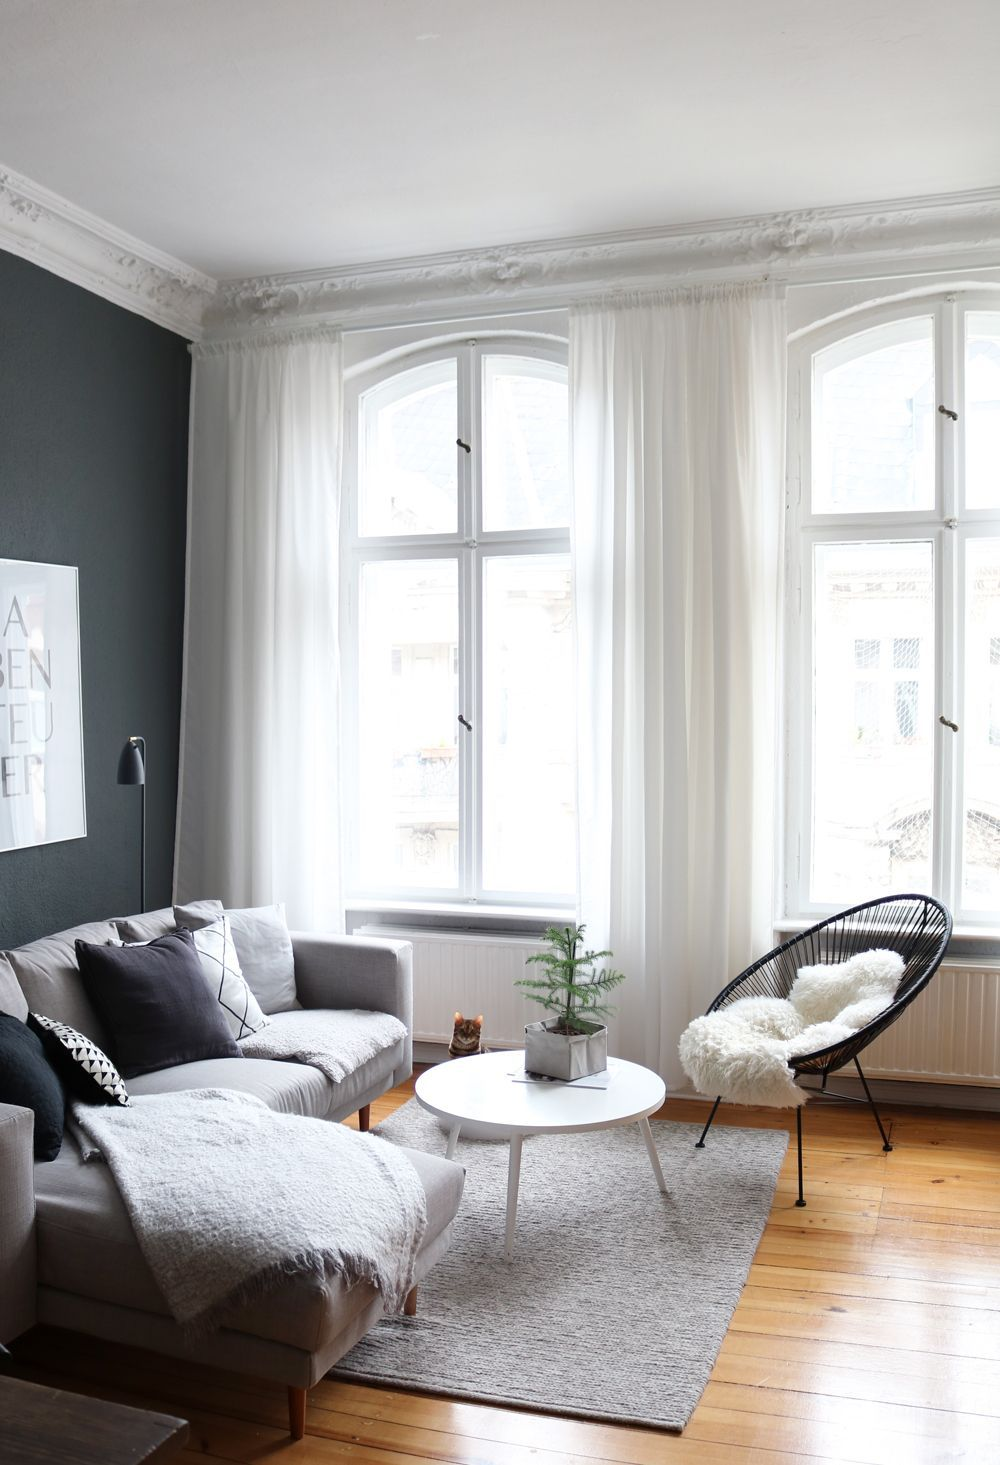 Photo of Cozy Home | The living room in December